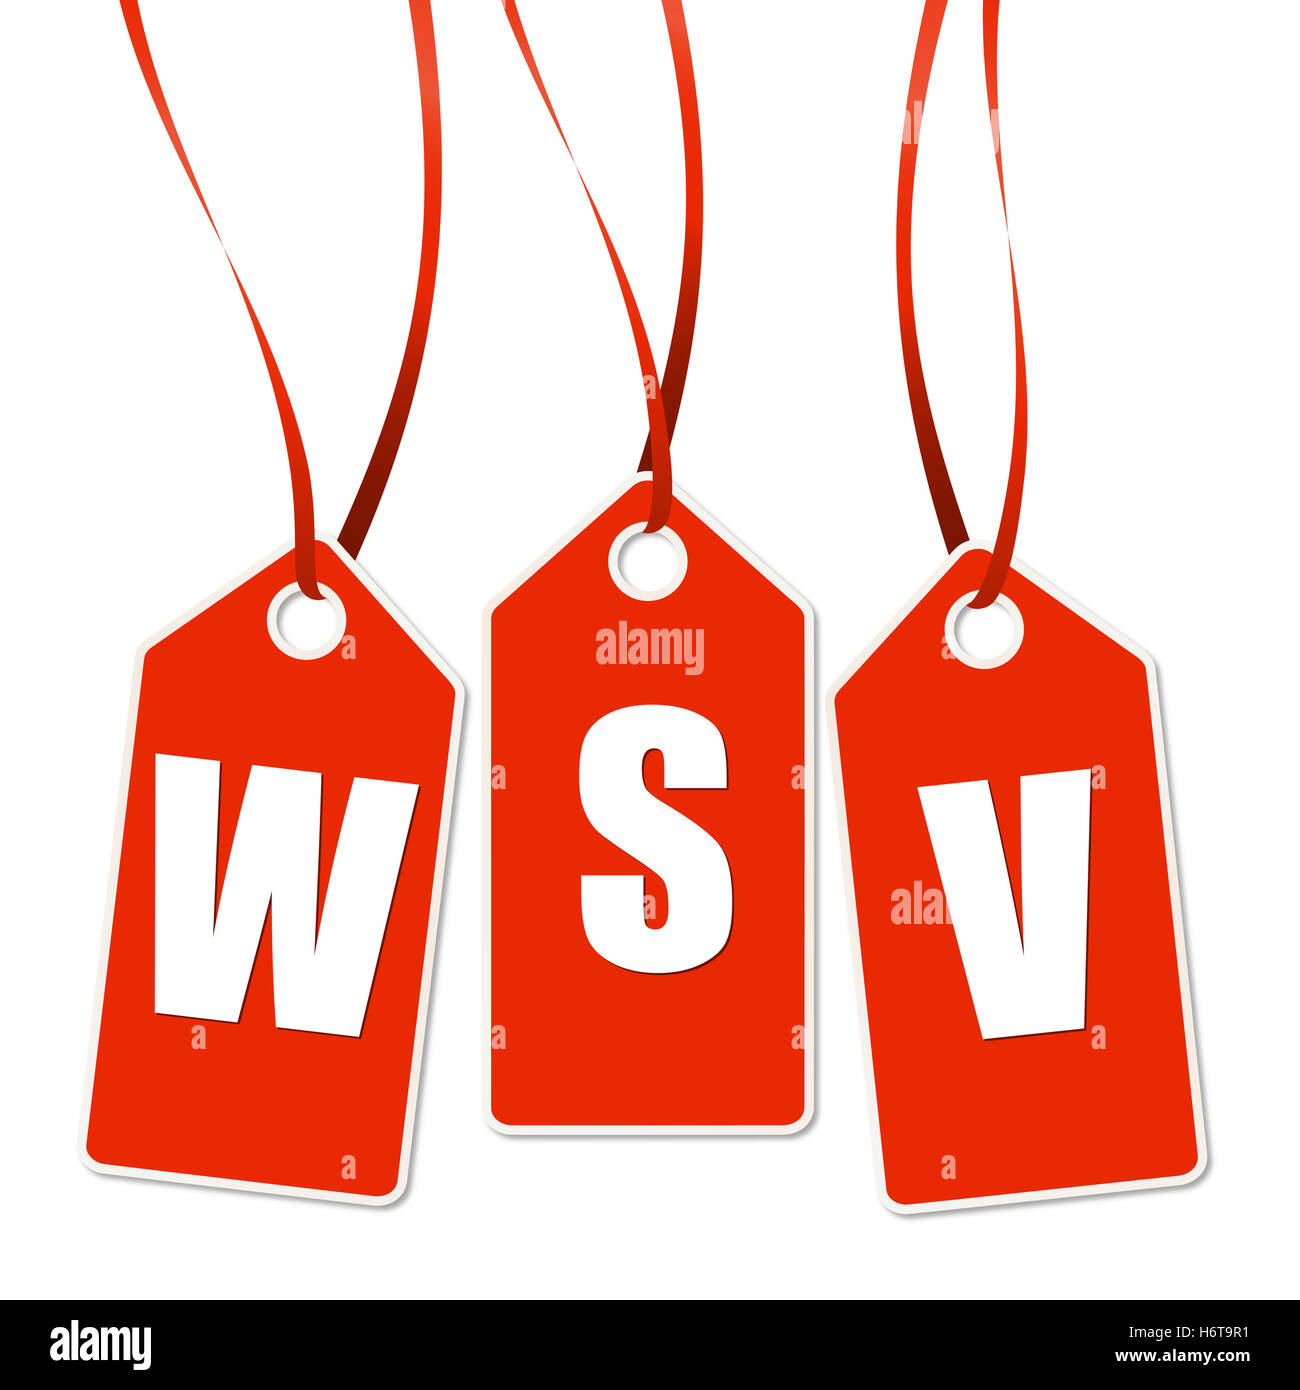 3 red pendant with wsv - Stock Image